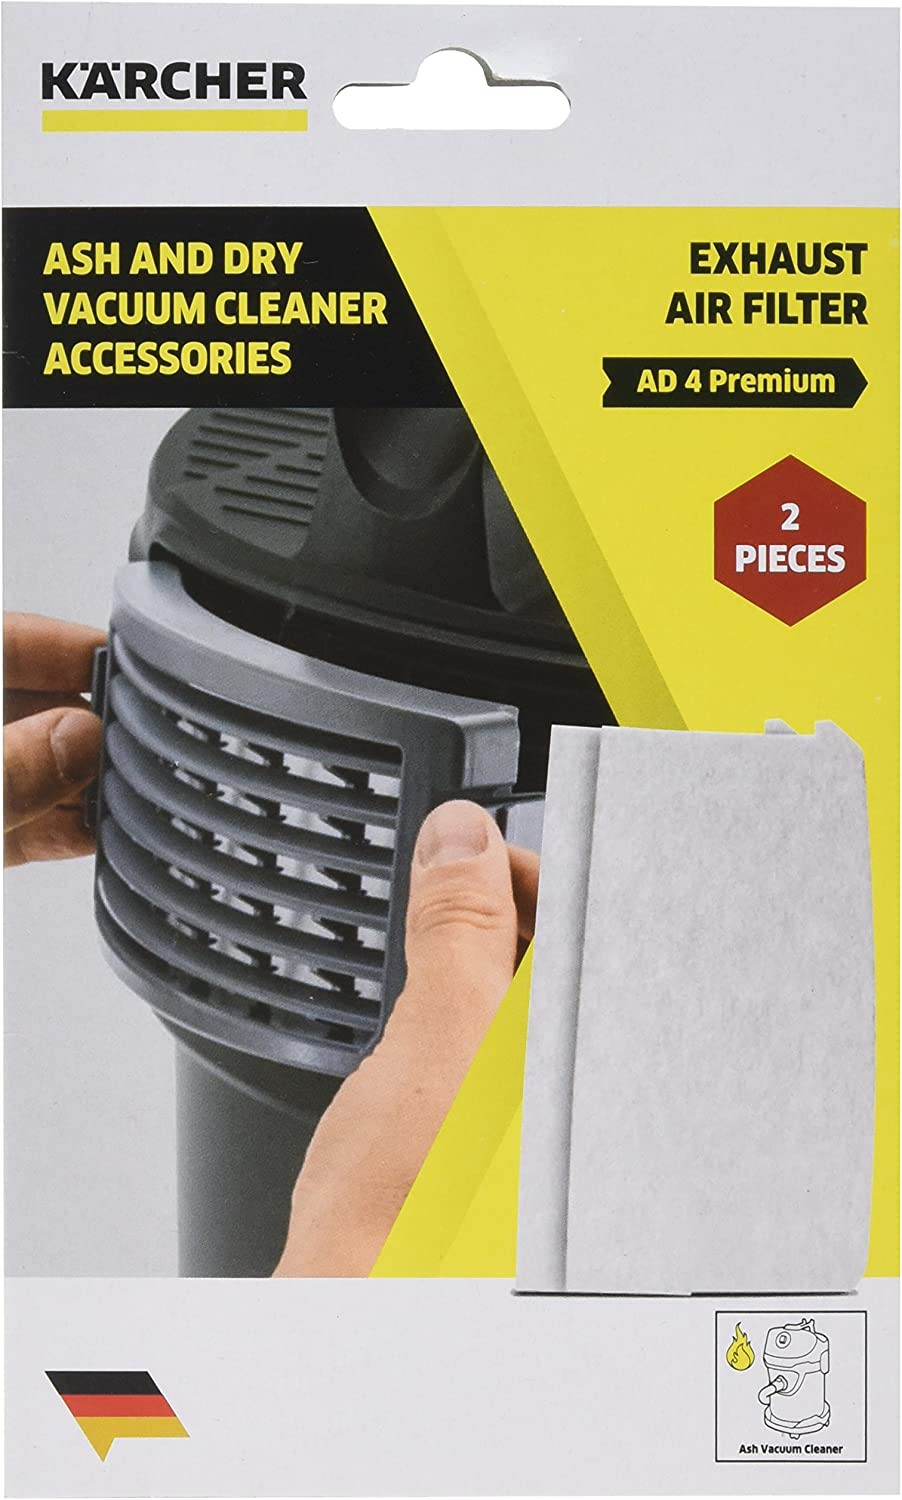 KAER5 2.863-262.0 Karcher AD 4 Premium Exhaust Filter for Ash and Dry Vacuum Cleaners, White